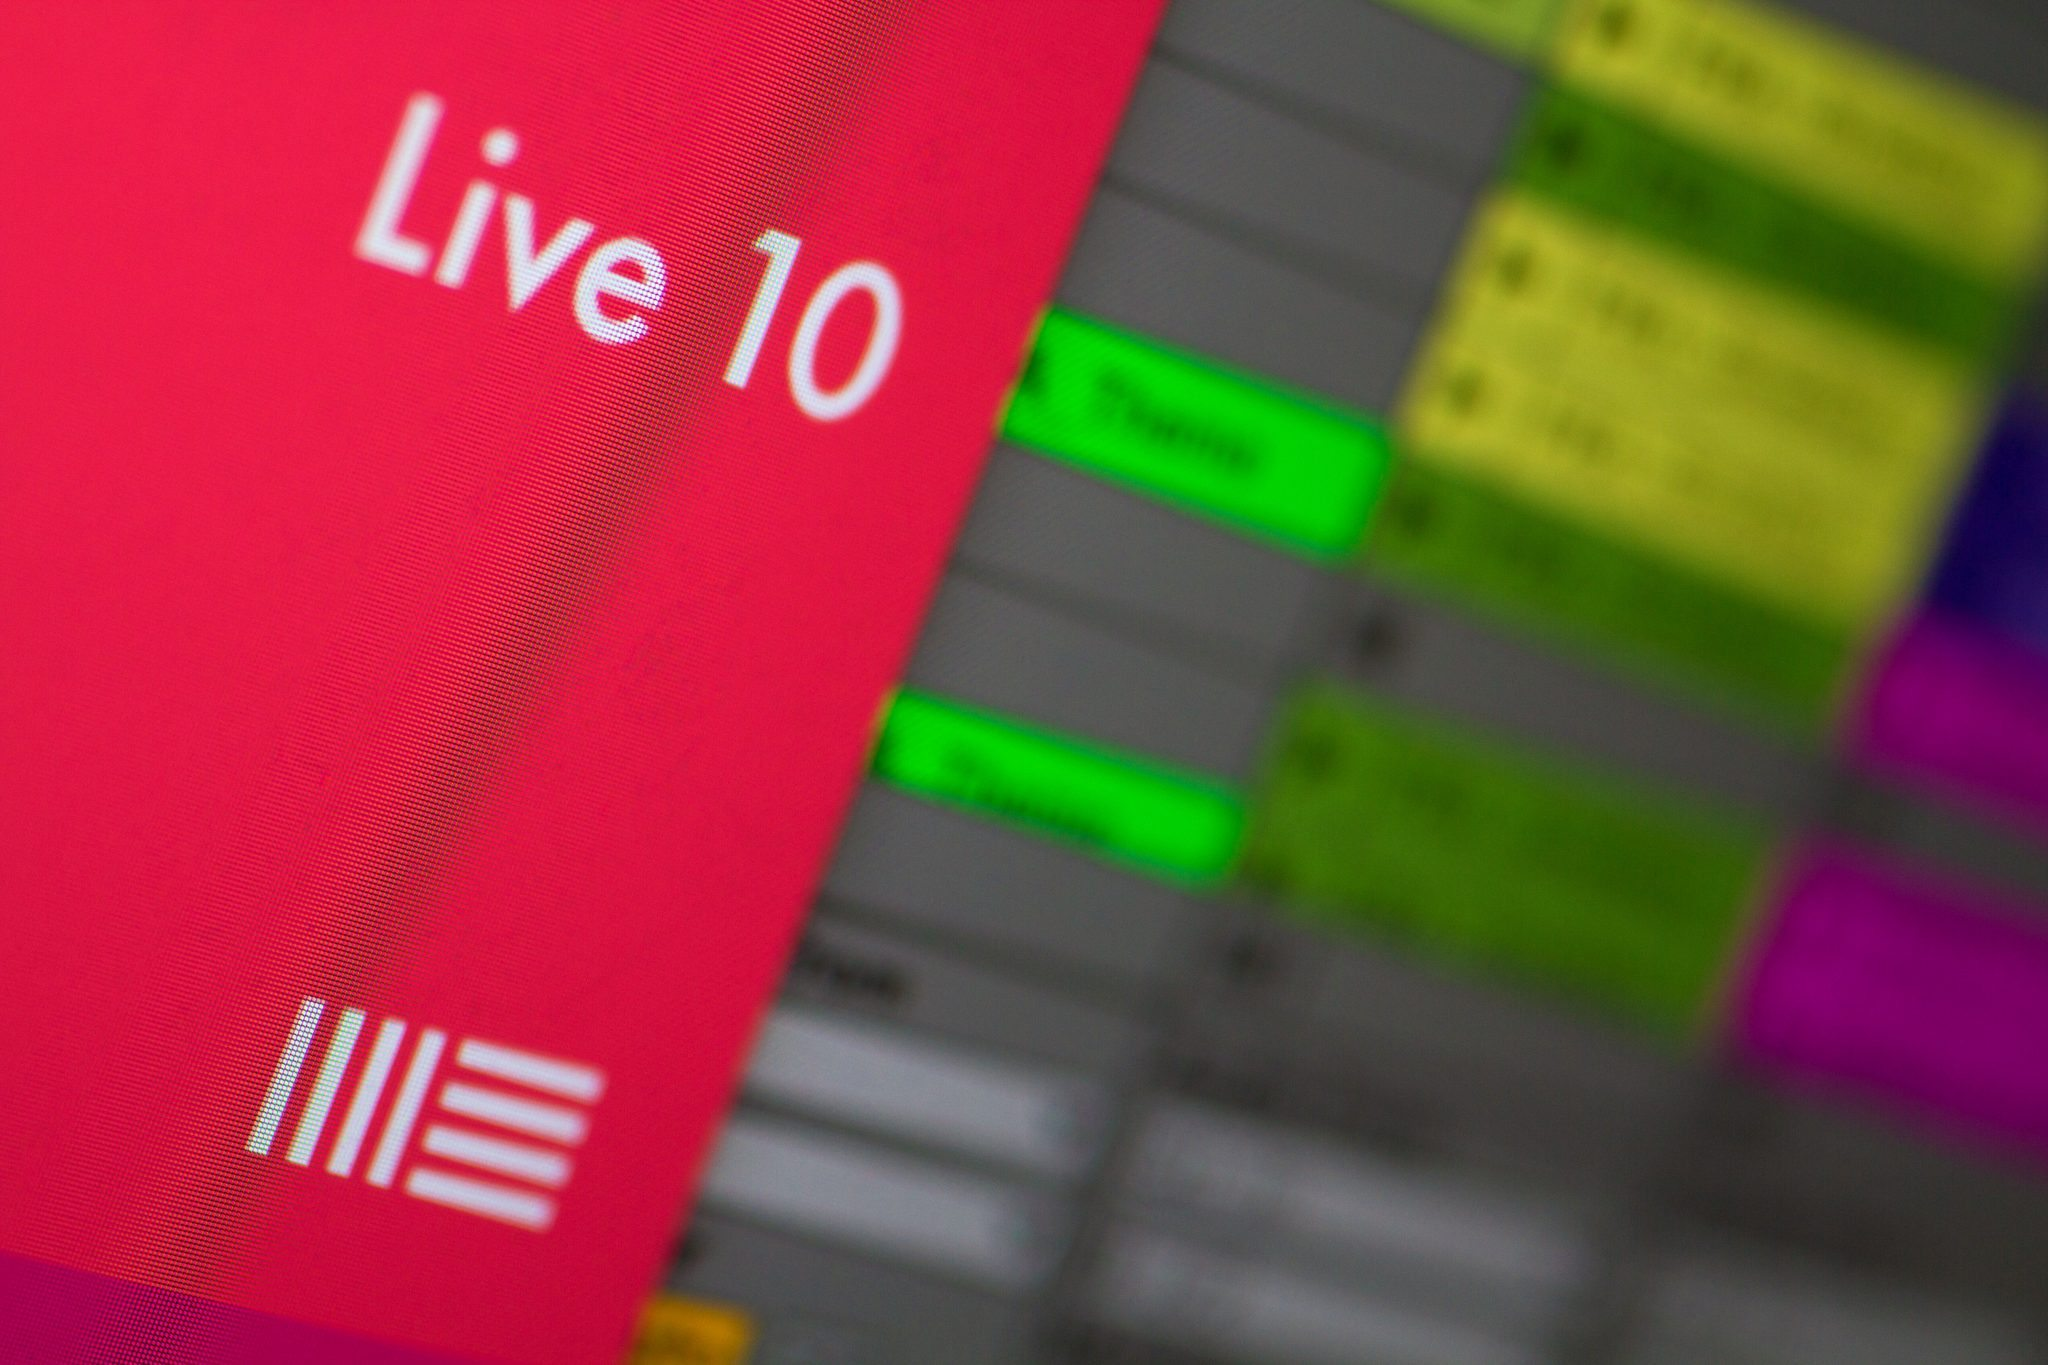 FIRST LOOK: Ray looks at Ableton Live 10 Beta 2